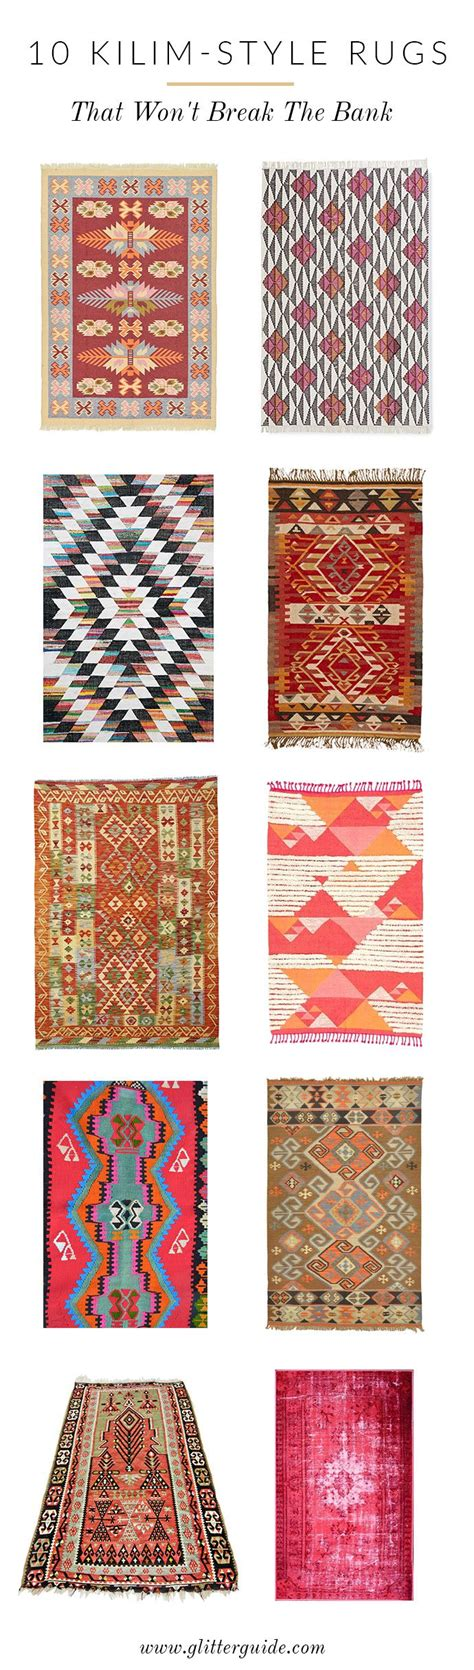 kilim style rugs 10 kilim style rugs that won t the bank glitter guide